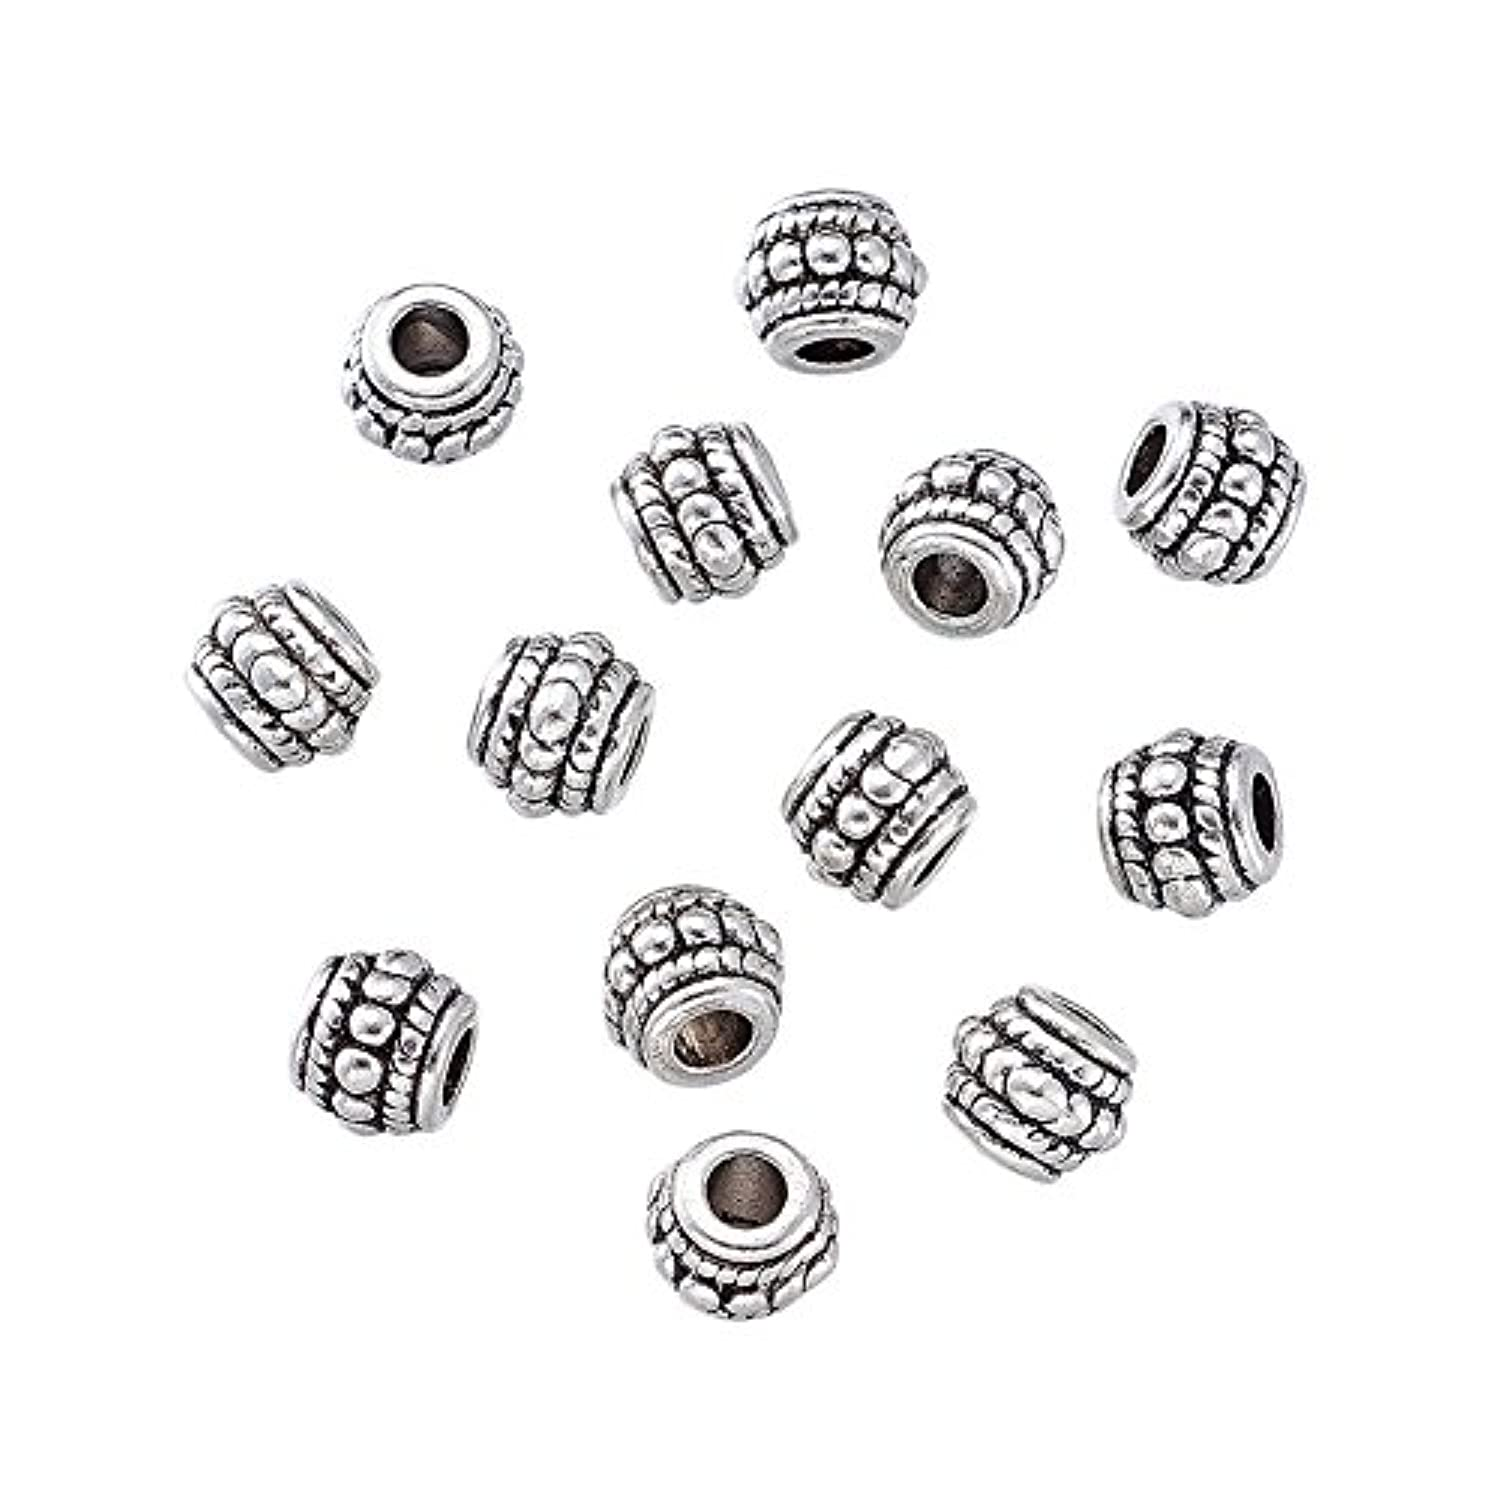 Pandahall 20pcs Tibetan Silver Antique Silver Barrel Beads Charms for Jewelry Makings Lead Free Cadmium Free Nickel Free 8x6.5mm Hole: 3mm